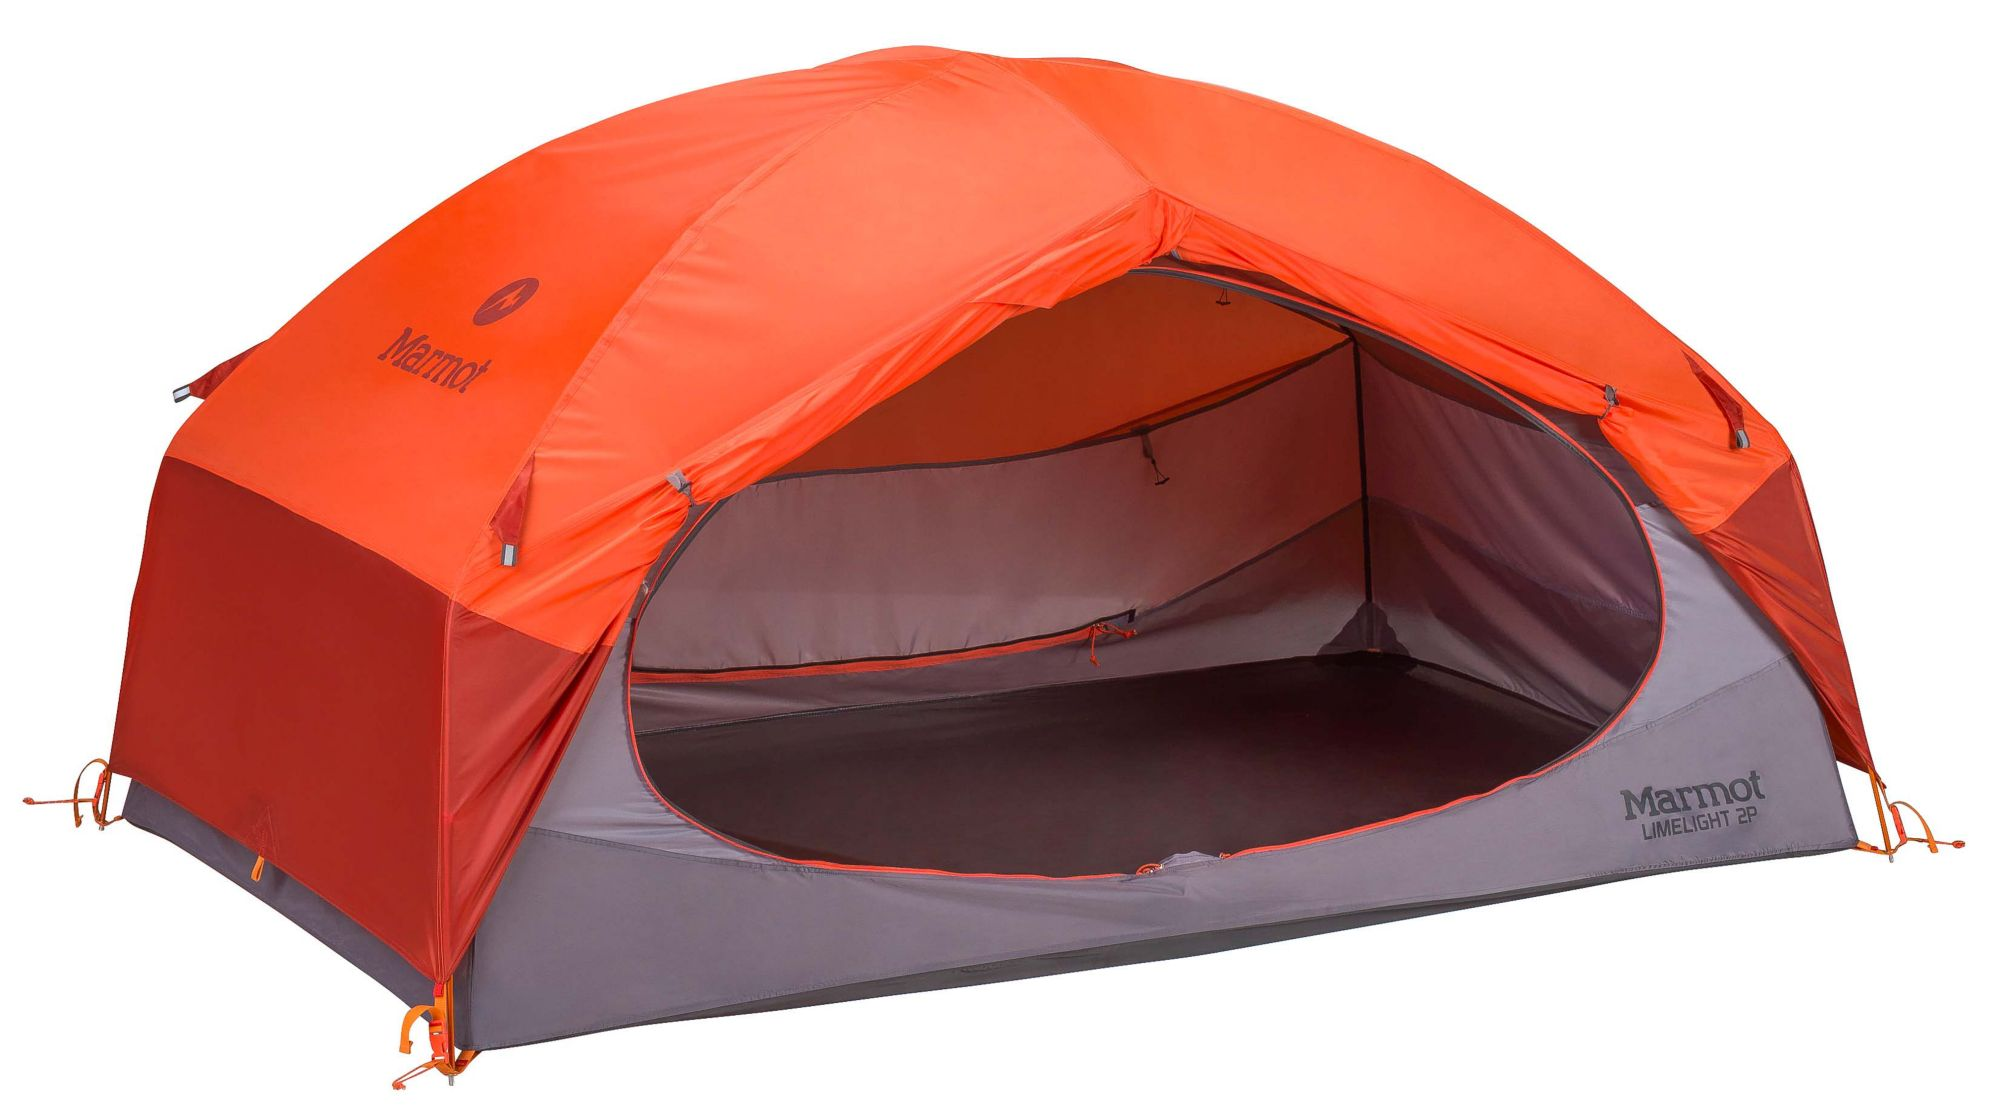 Limelight 2P Cinder/Rusted Orange medium  sc 1 st  Marmot : marmot 2 person tent - memphite.com